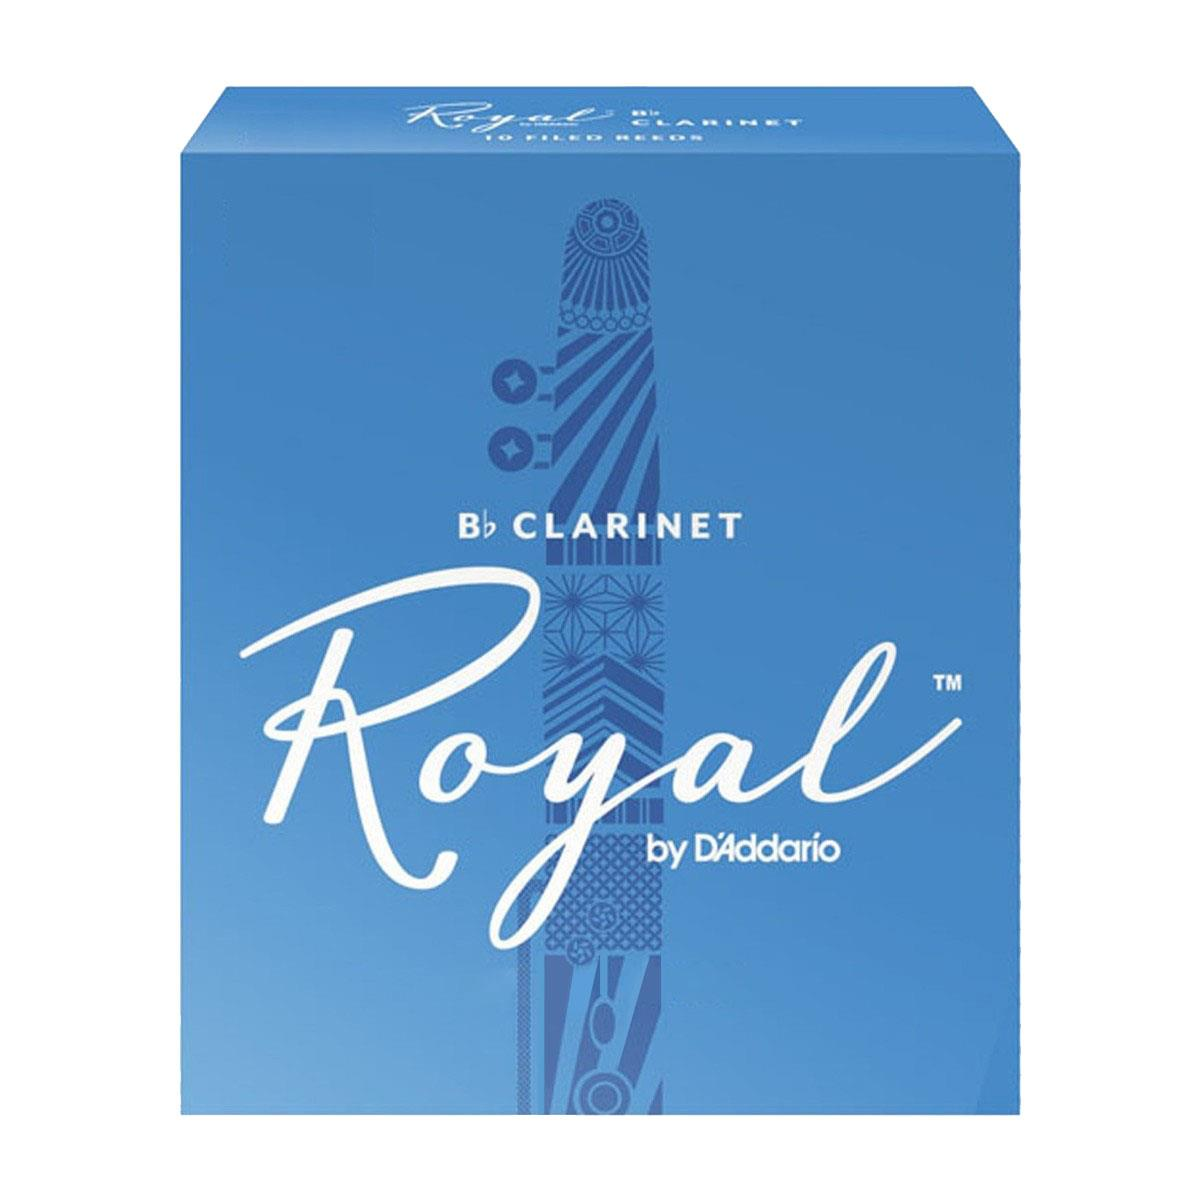 Image of D'Addario Woodwind Royal RCB1040 Bb Clarinet Reeds Strength 4 10-pack 0046716533272